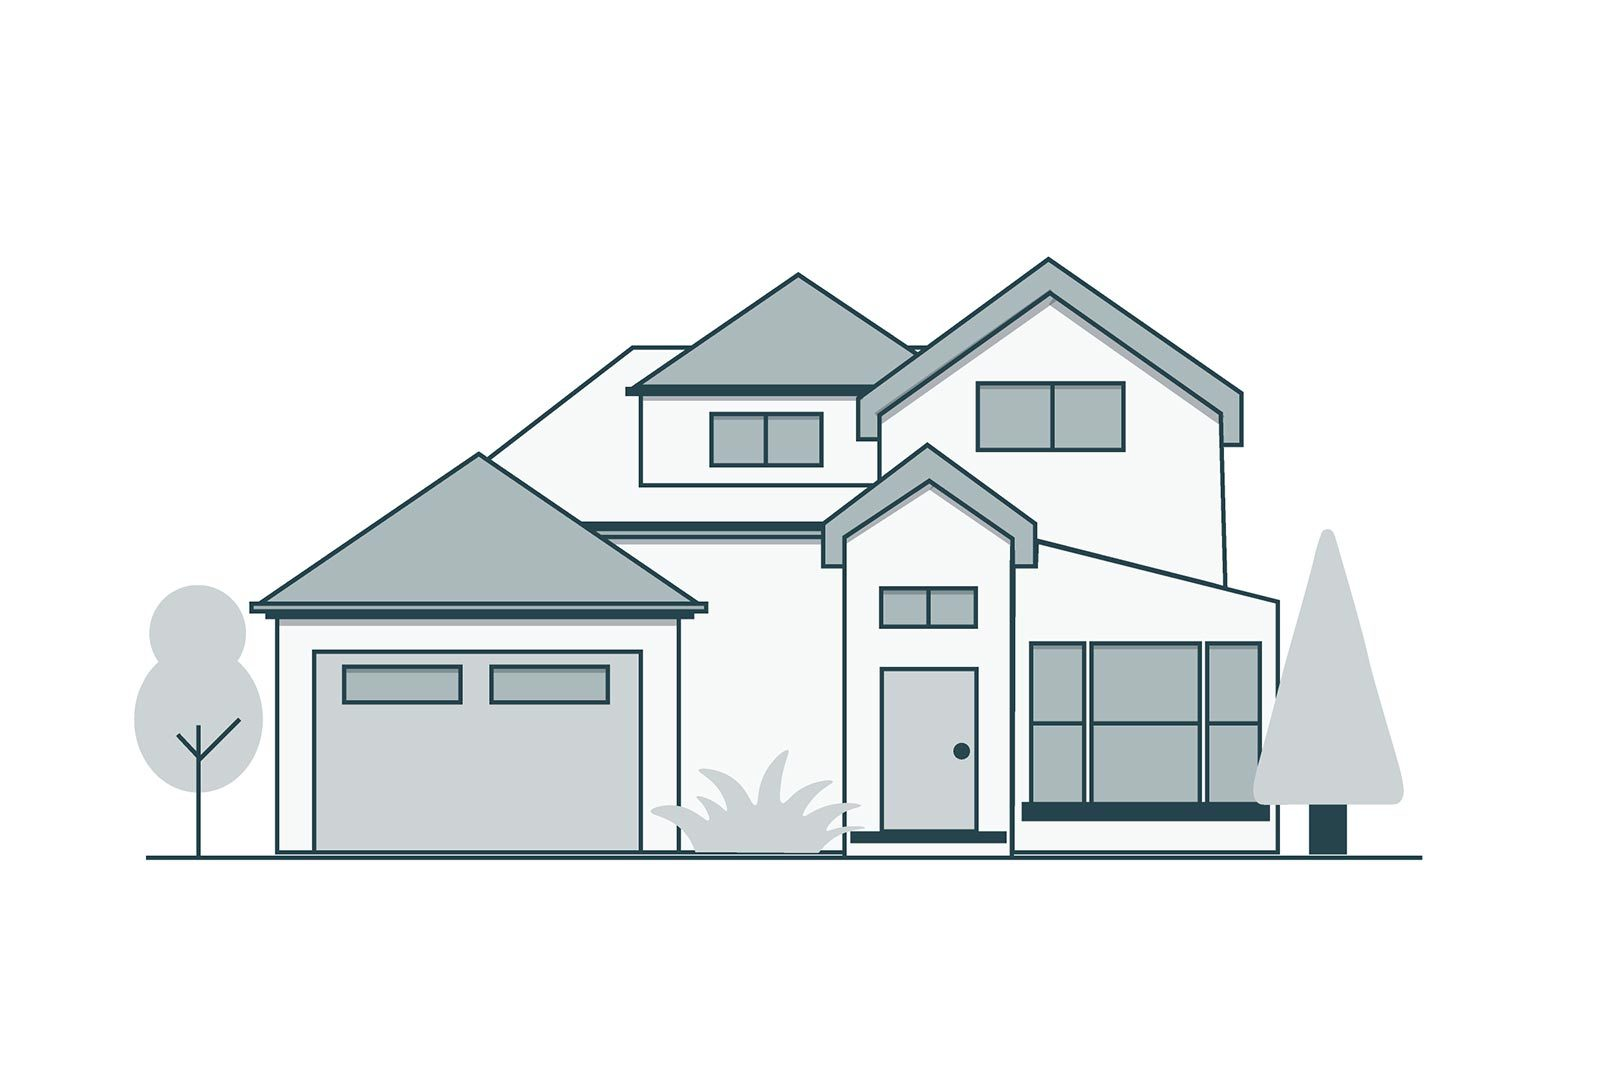 333 7th Avenue San Francisco, CA 94118